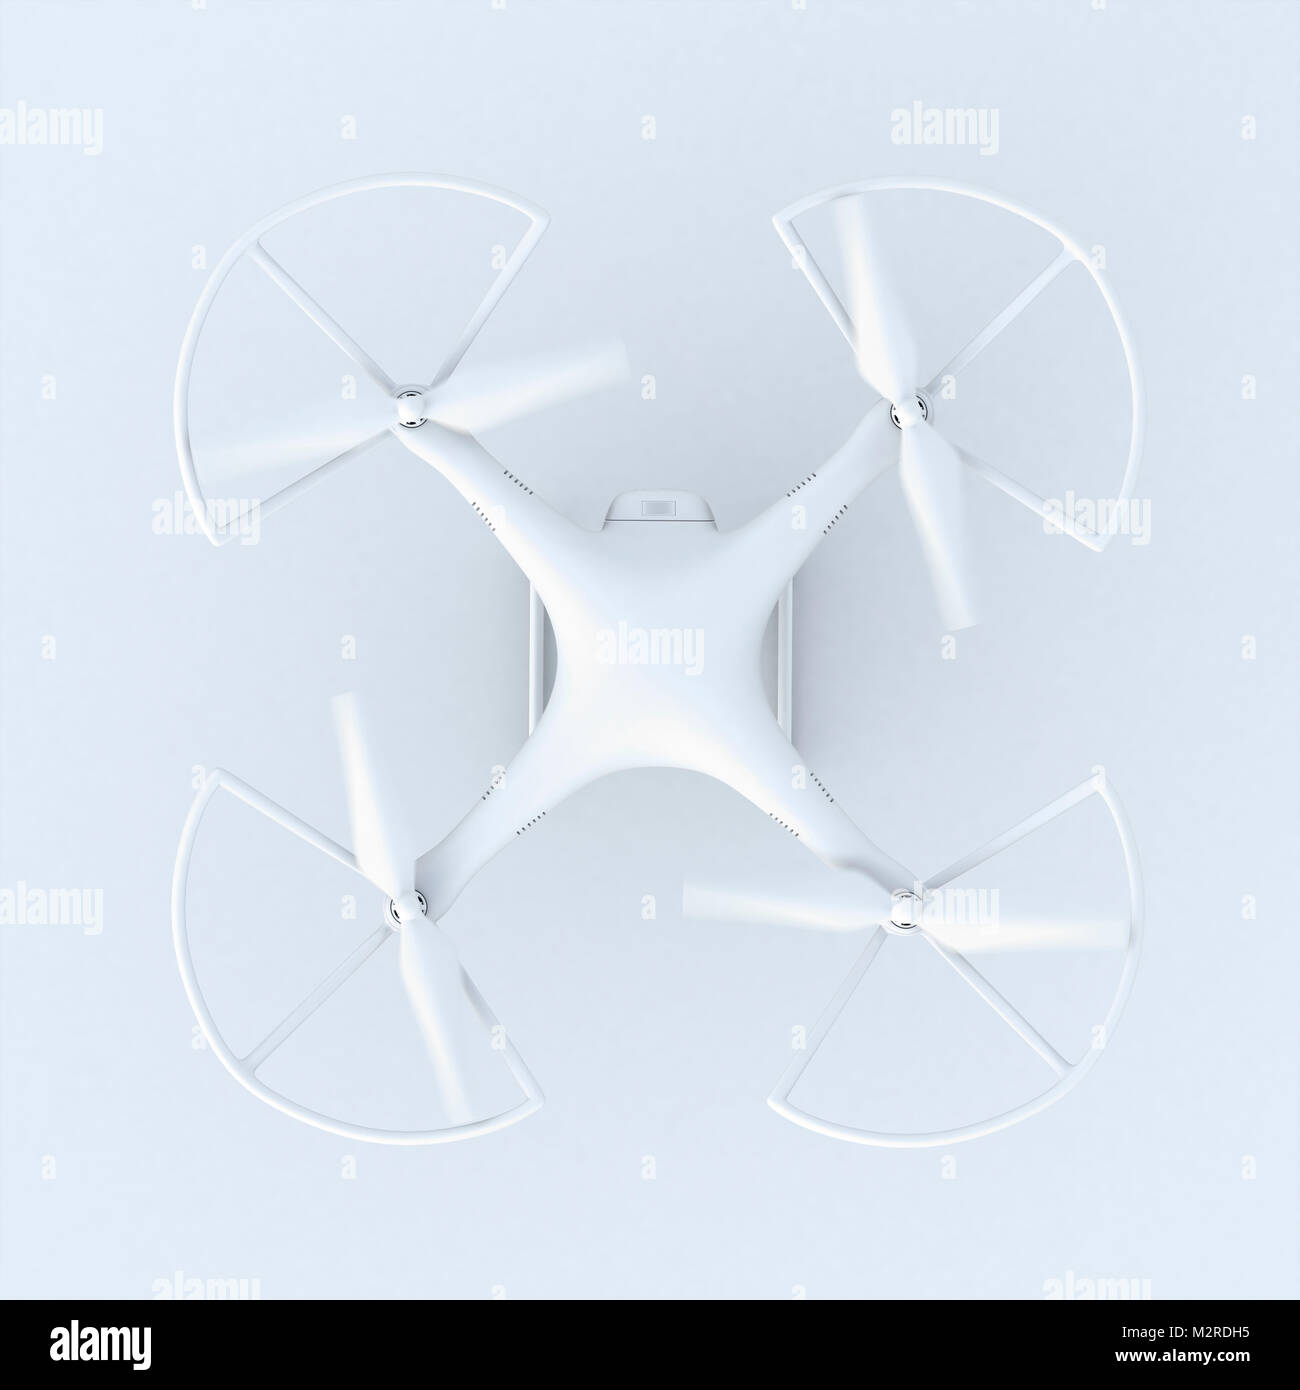 [M] CGI, 3-D, computer graphics of a polygon model, drone - Stock Image